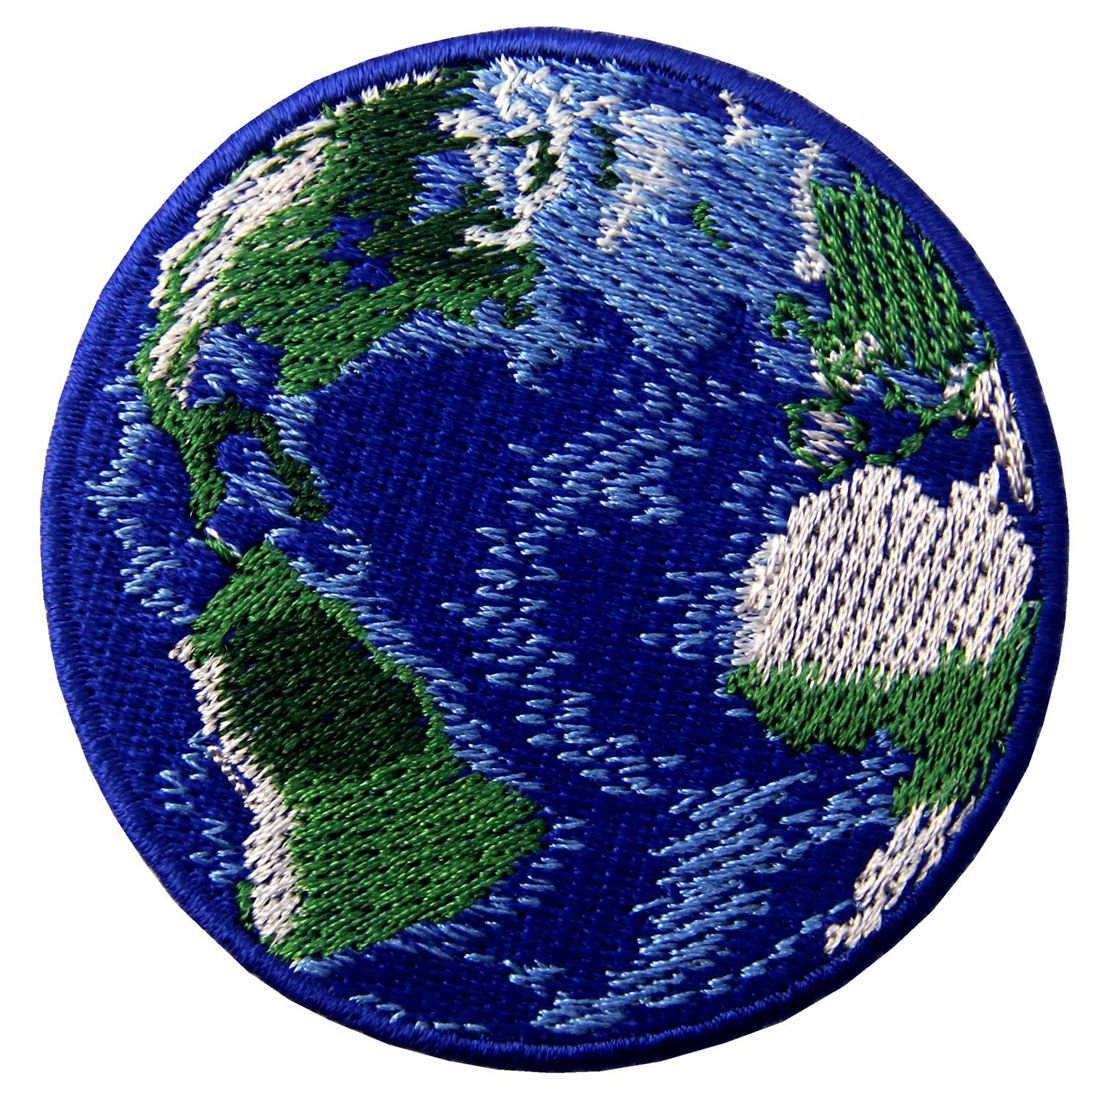 Blue Earth World Planet Embroidered Badge Iron On Sew On Patch ZEGIN